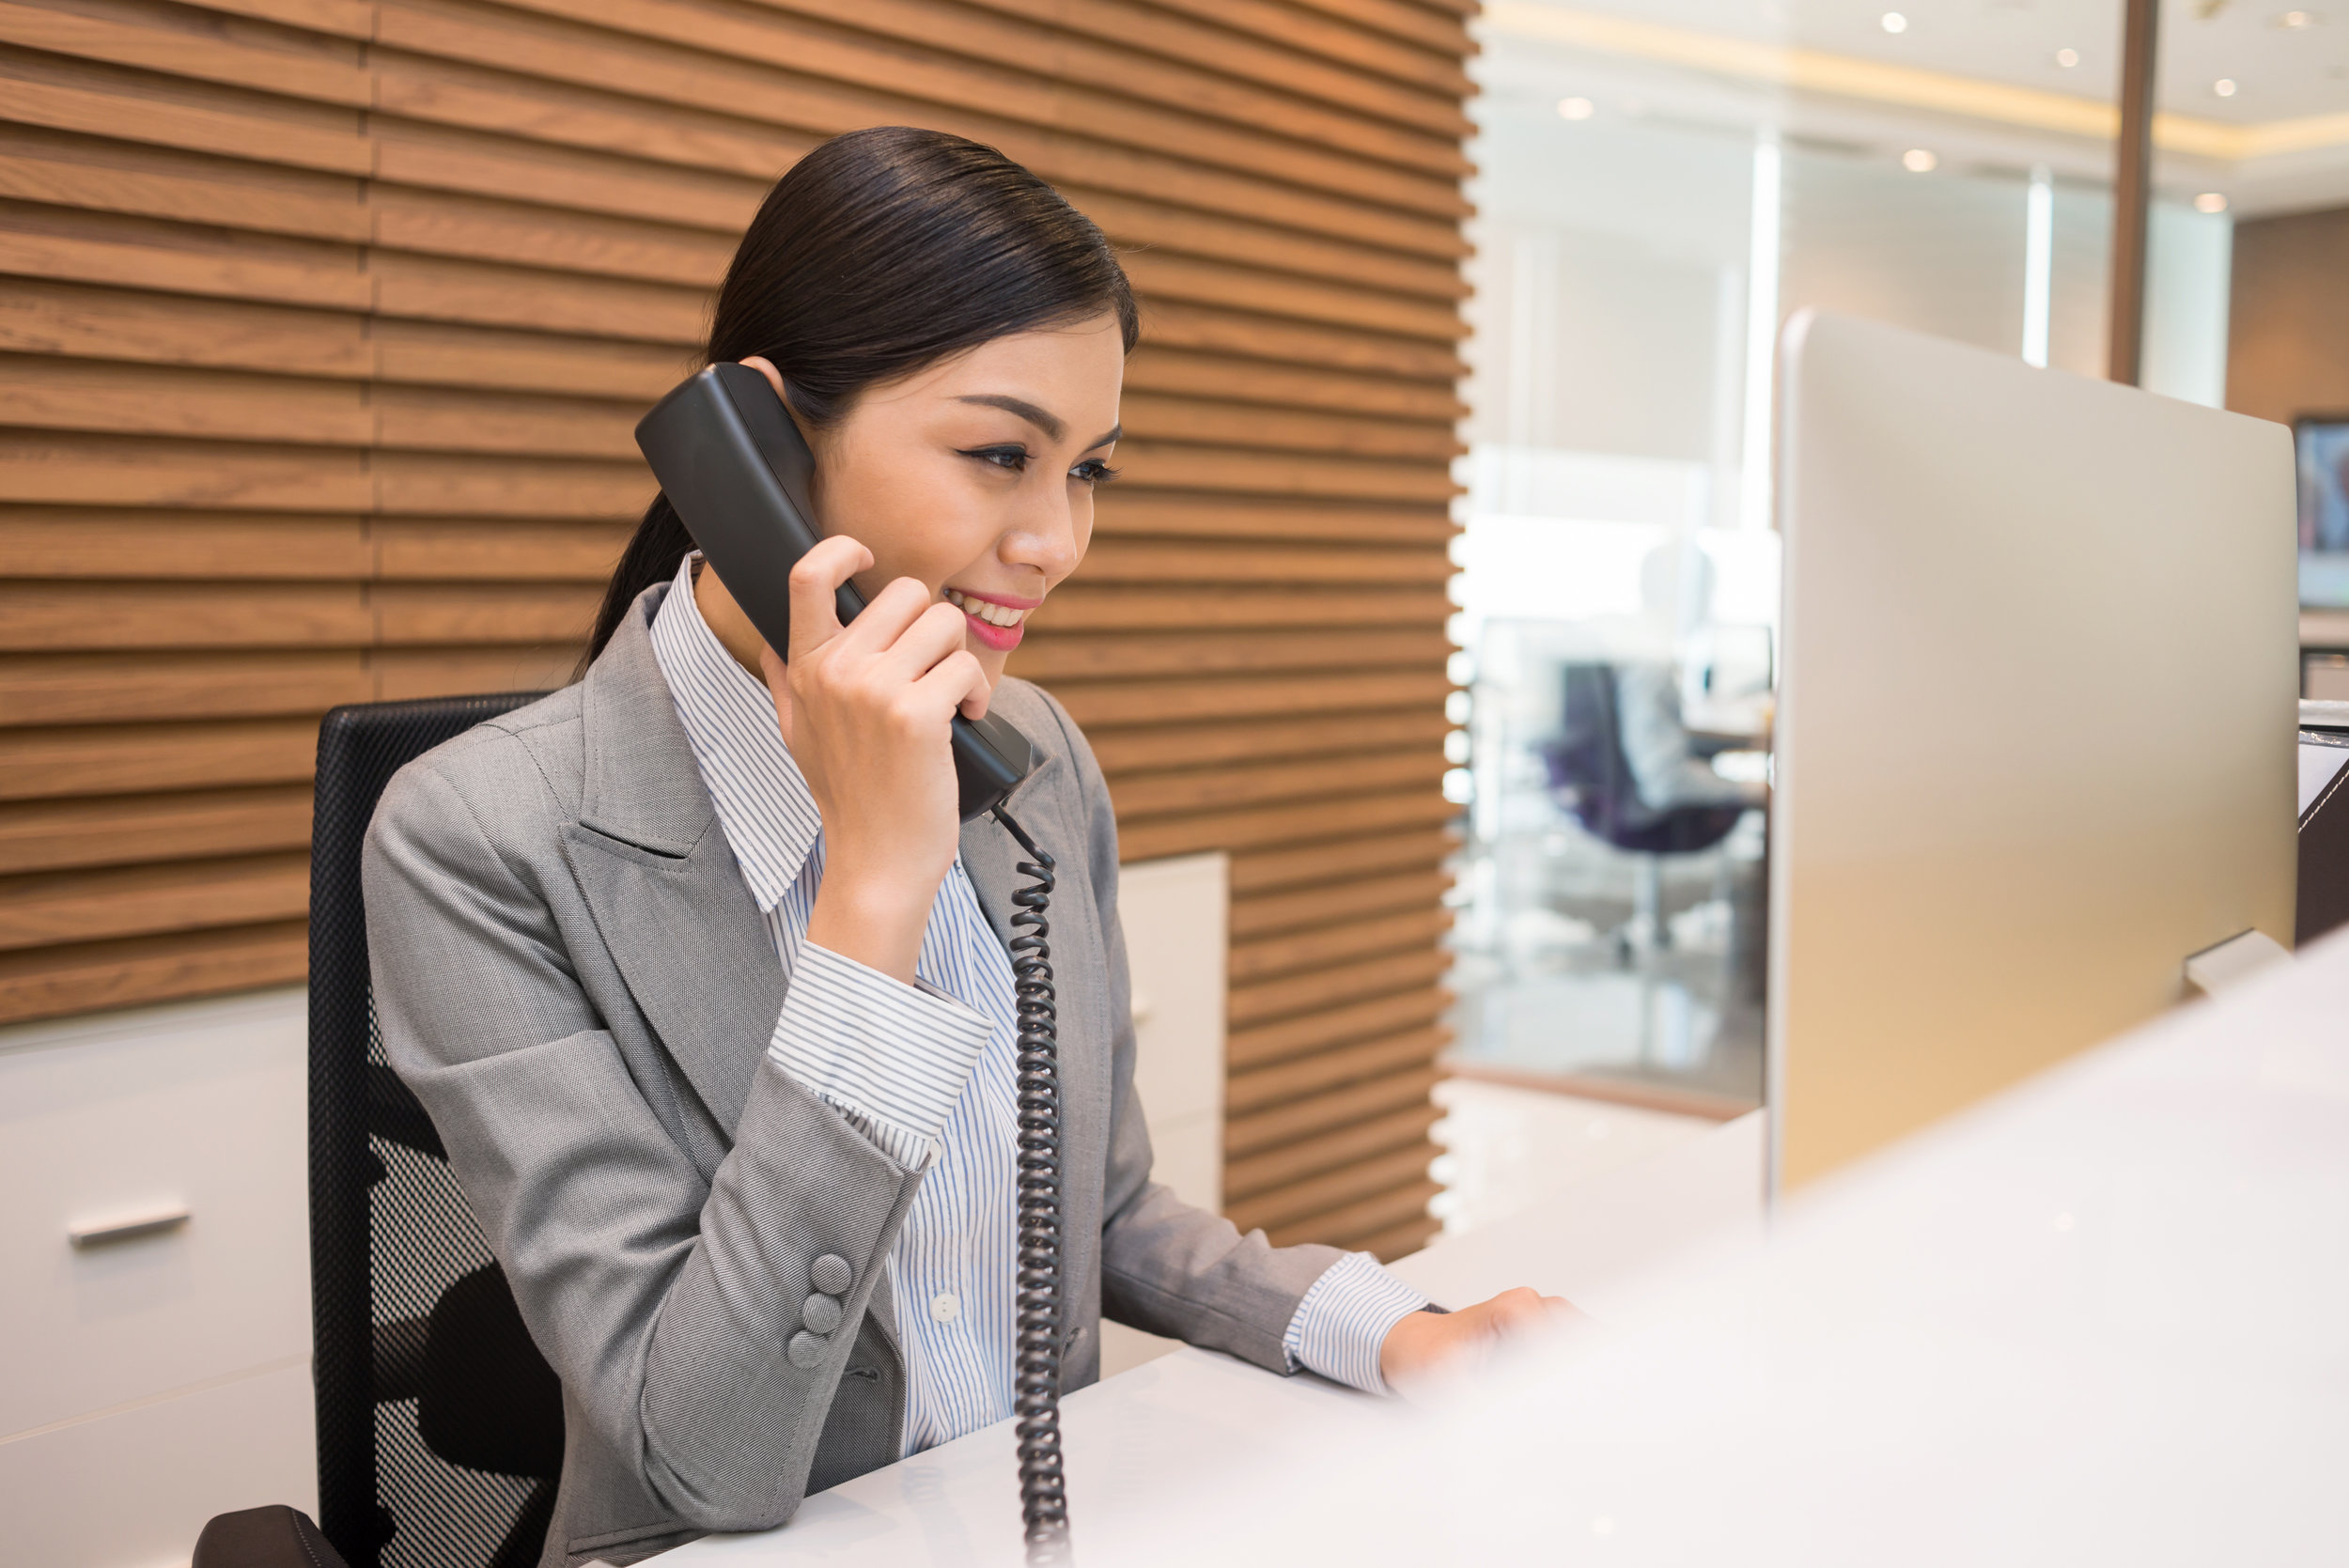 Dedicated Phone Service and Receptionist - Your company will carry a business number and full receptionist service, no matter how long you stay. Automatic call screening and personalized messaging make it easy for your company to stand out, no matter how long you chose to stay.